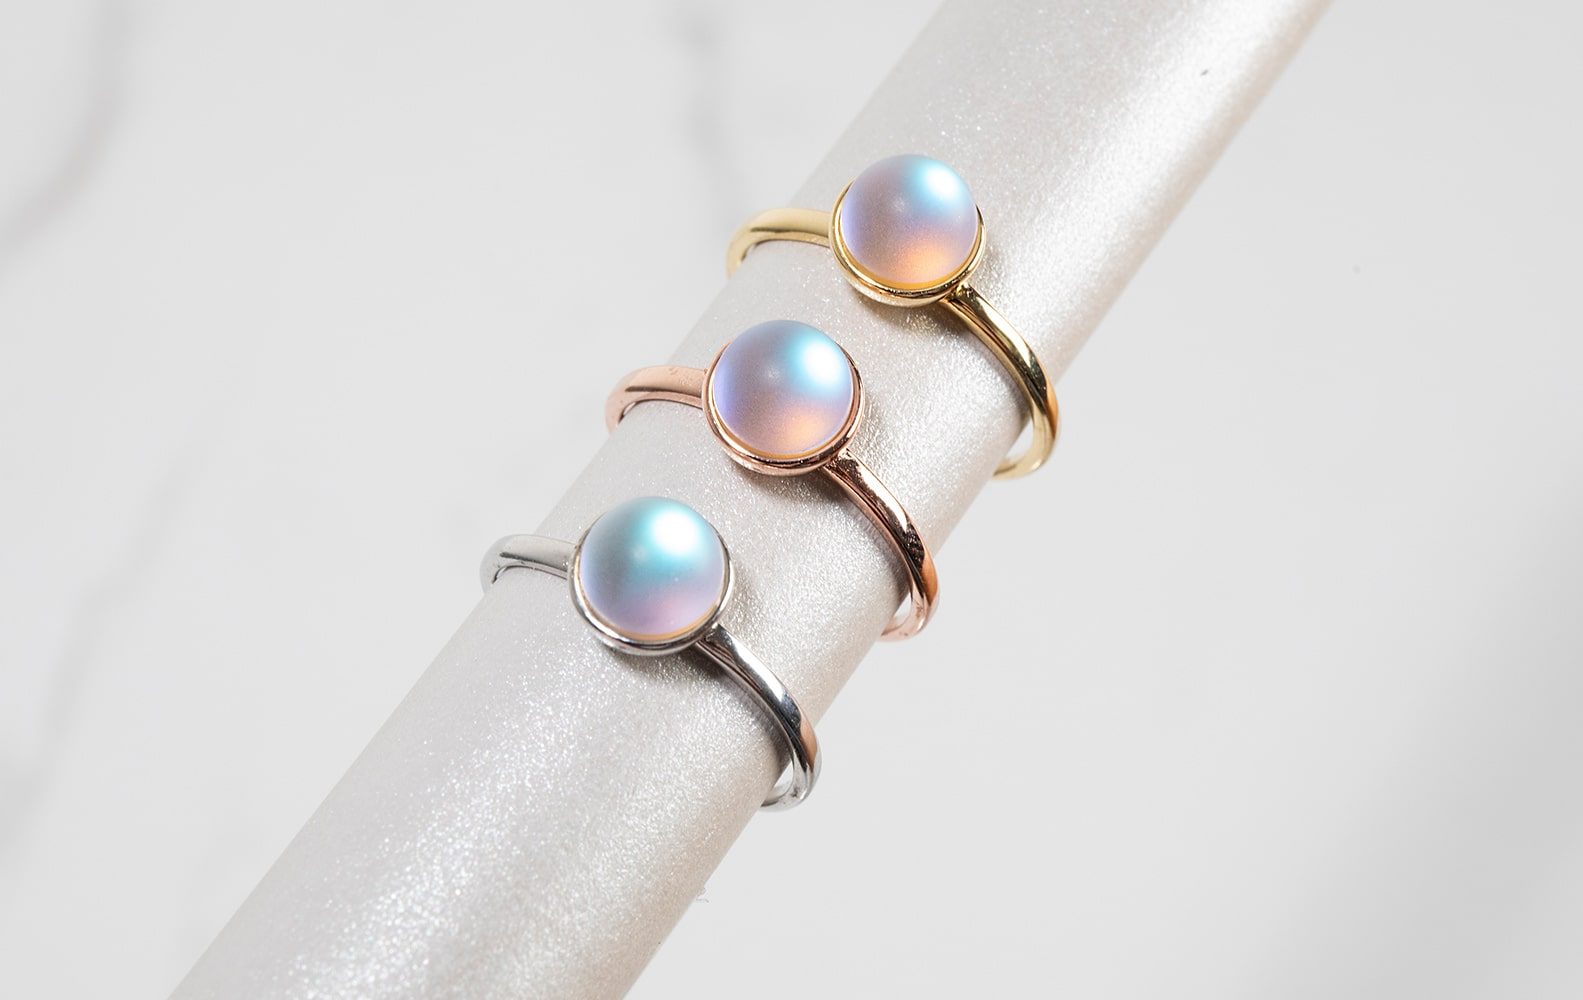 NOGU Authentic Mermaid Glass Rings (Rose Gold, Sterling Silver, and Gold) Dainty Jewelry Rings, Handmade